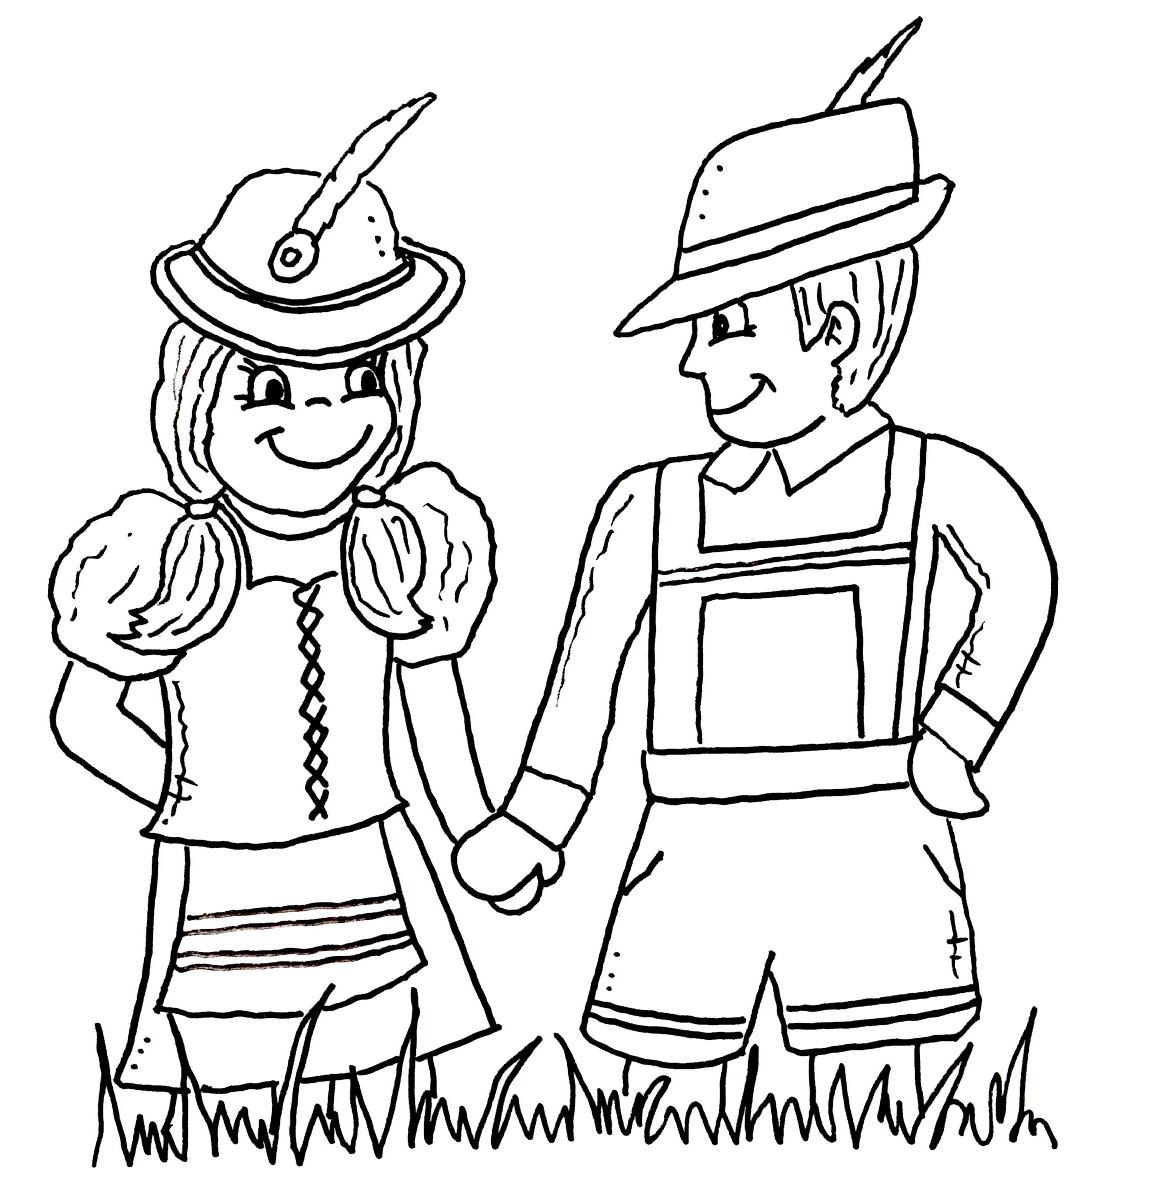 bavarian coloring pages - photo#4